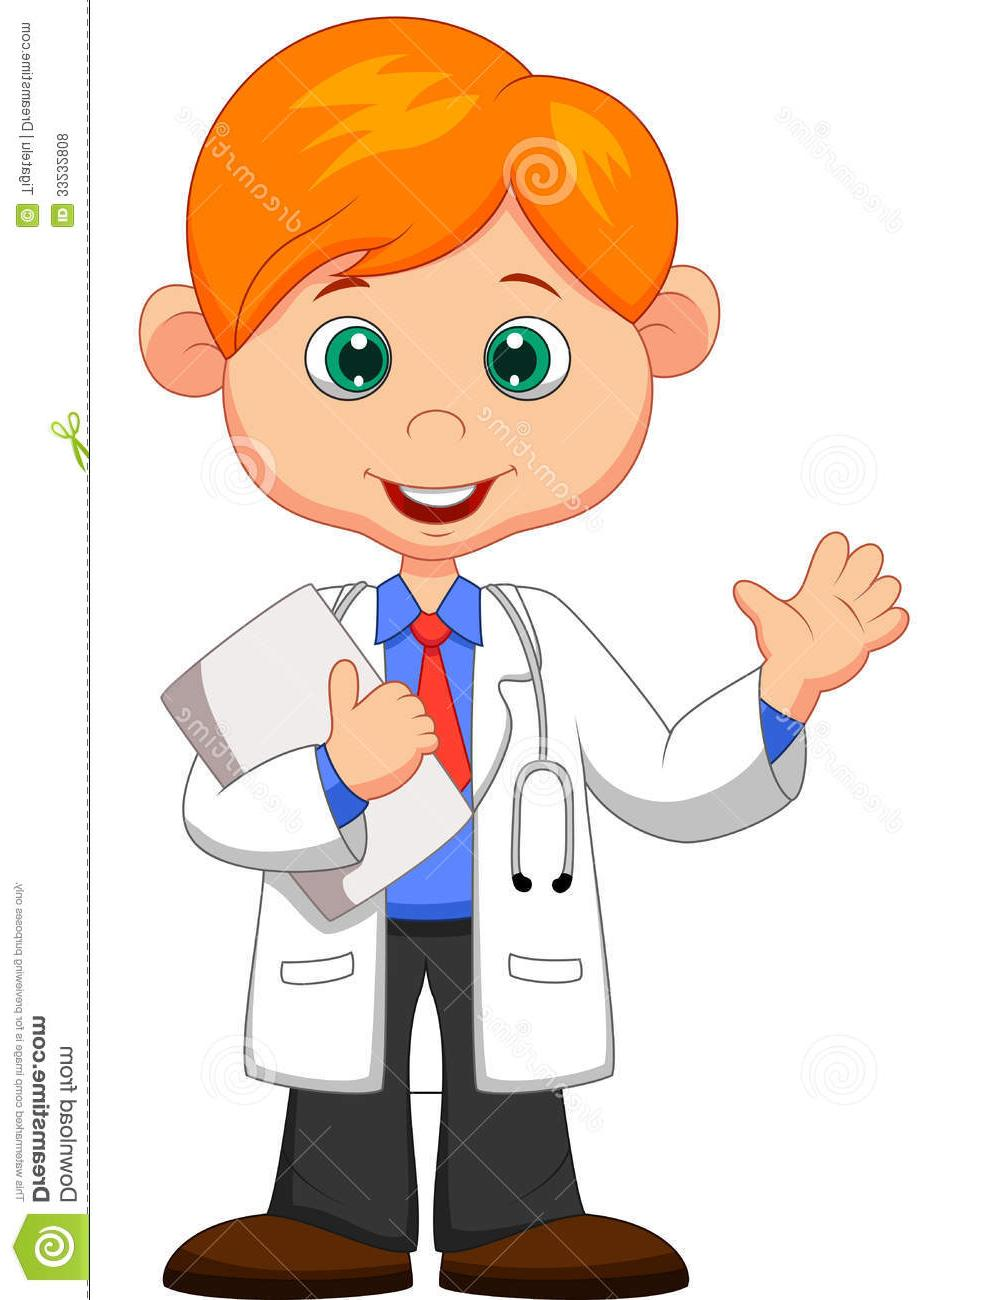 Clipart of sign the doctor is in cartoon clip royalty free library Unique Doctor Cartoon Clip Art Design » Free Vector Art, Images ... clip royalty free library